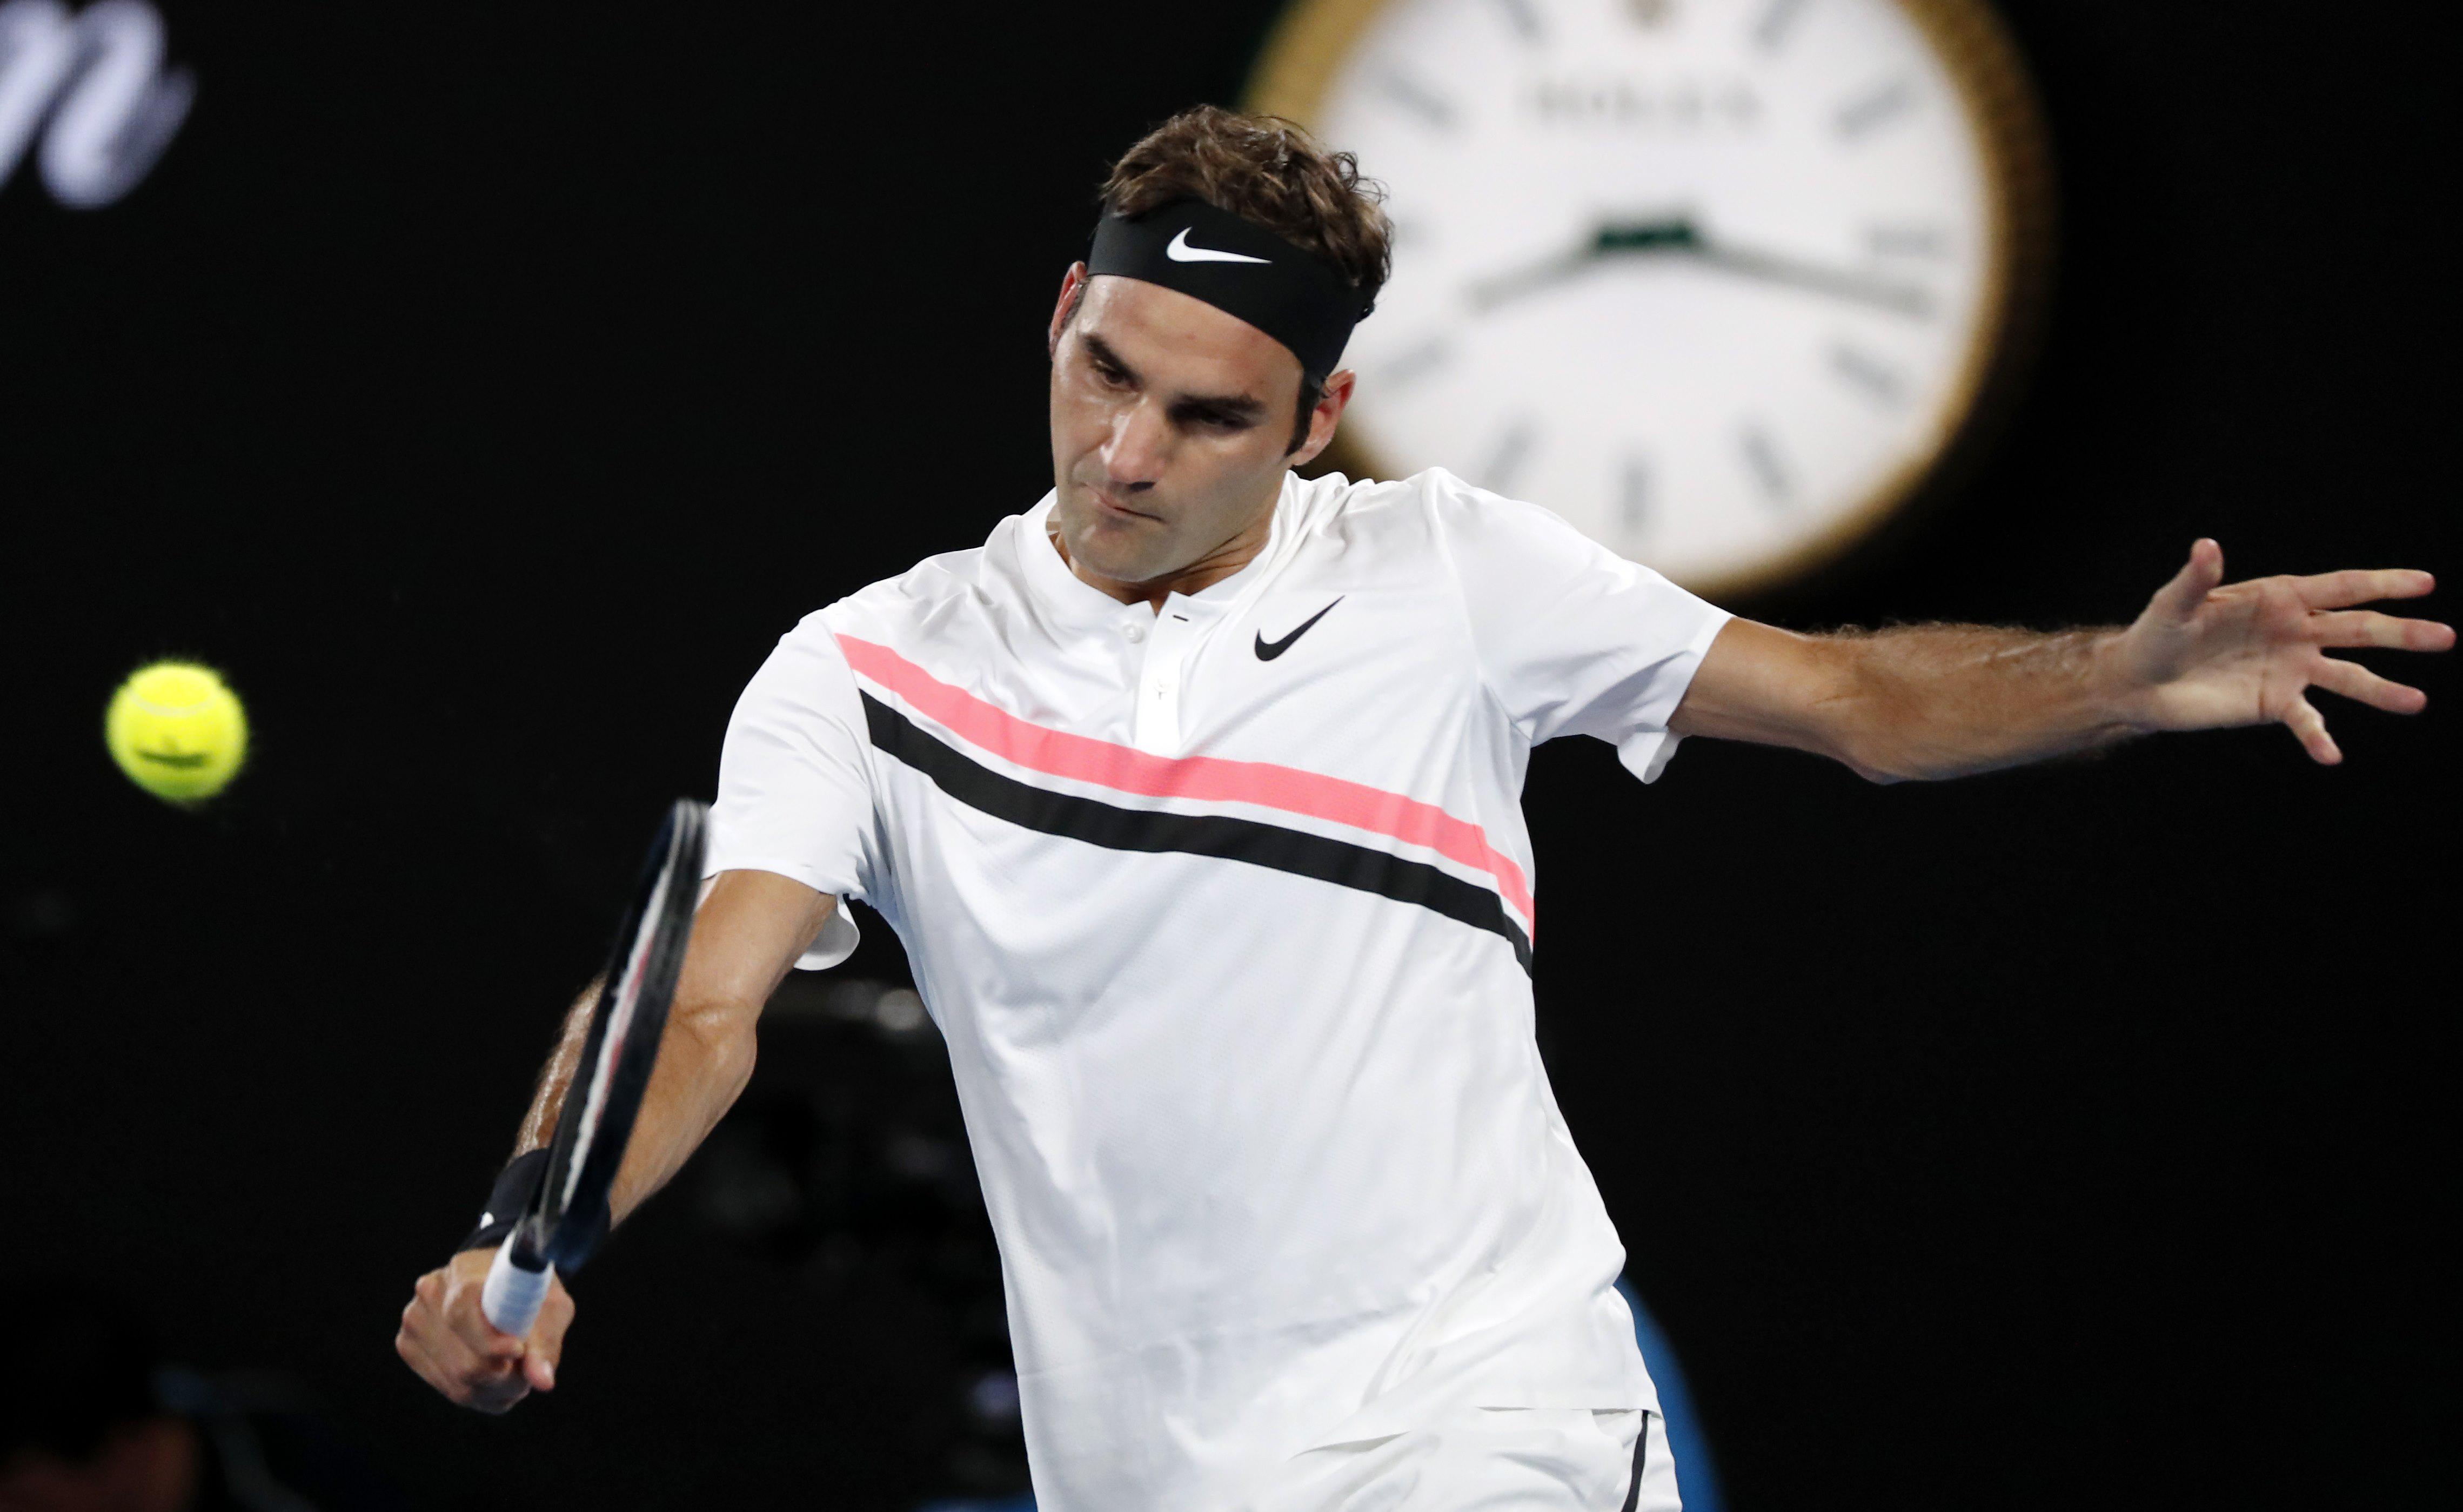 Roger Federer's victory was booed by crowd in Australia